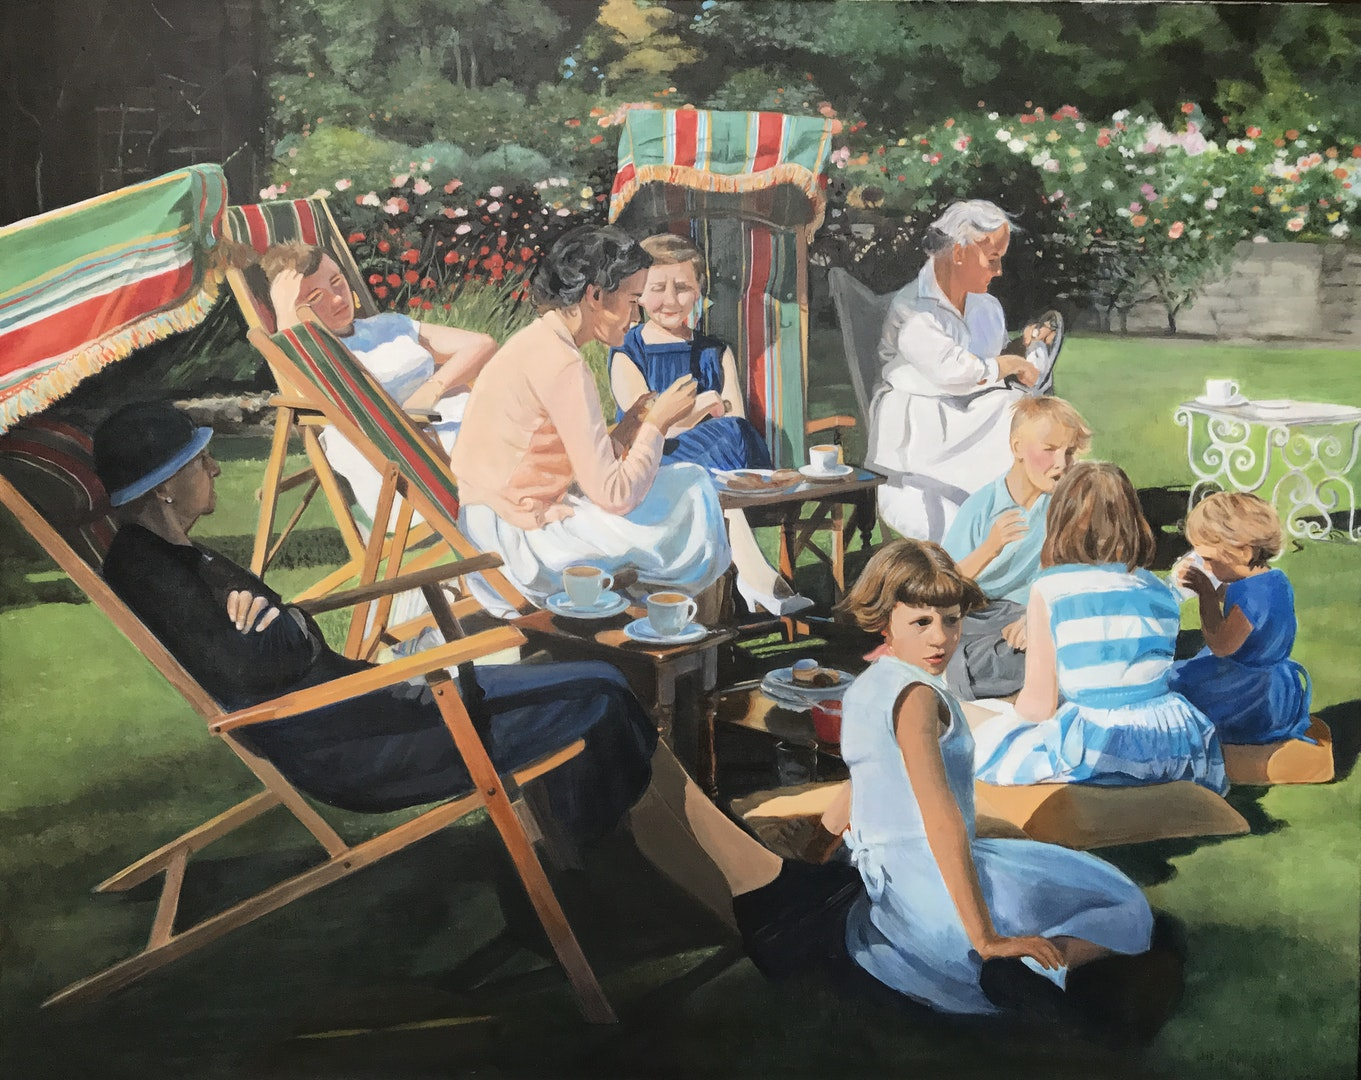 'Sunday afternoon', Annette Tranter, Acrylic on canvas, 61 x 76